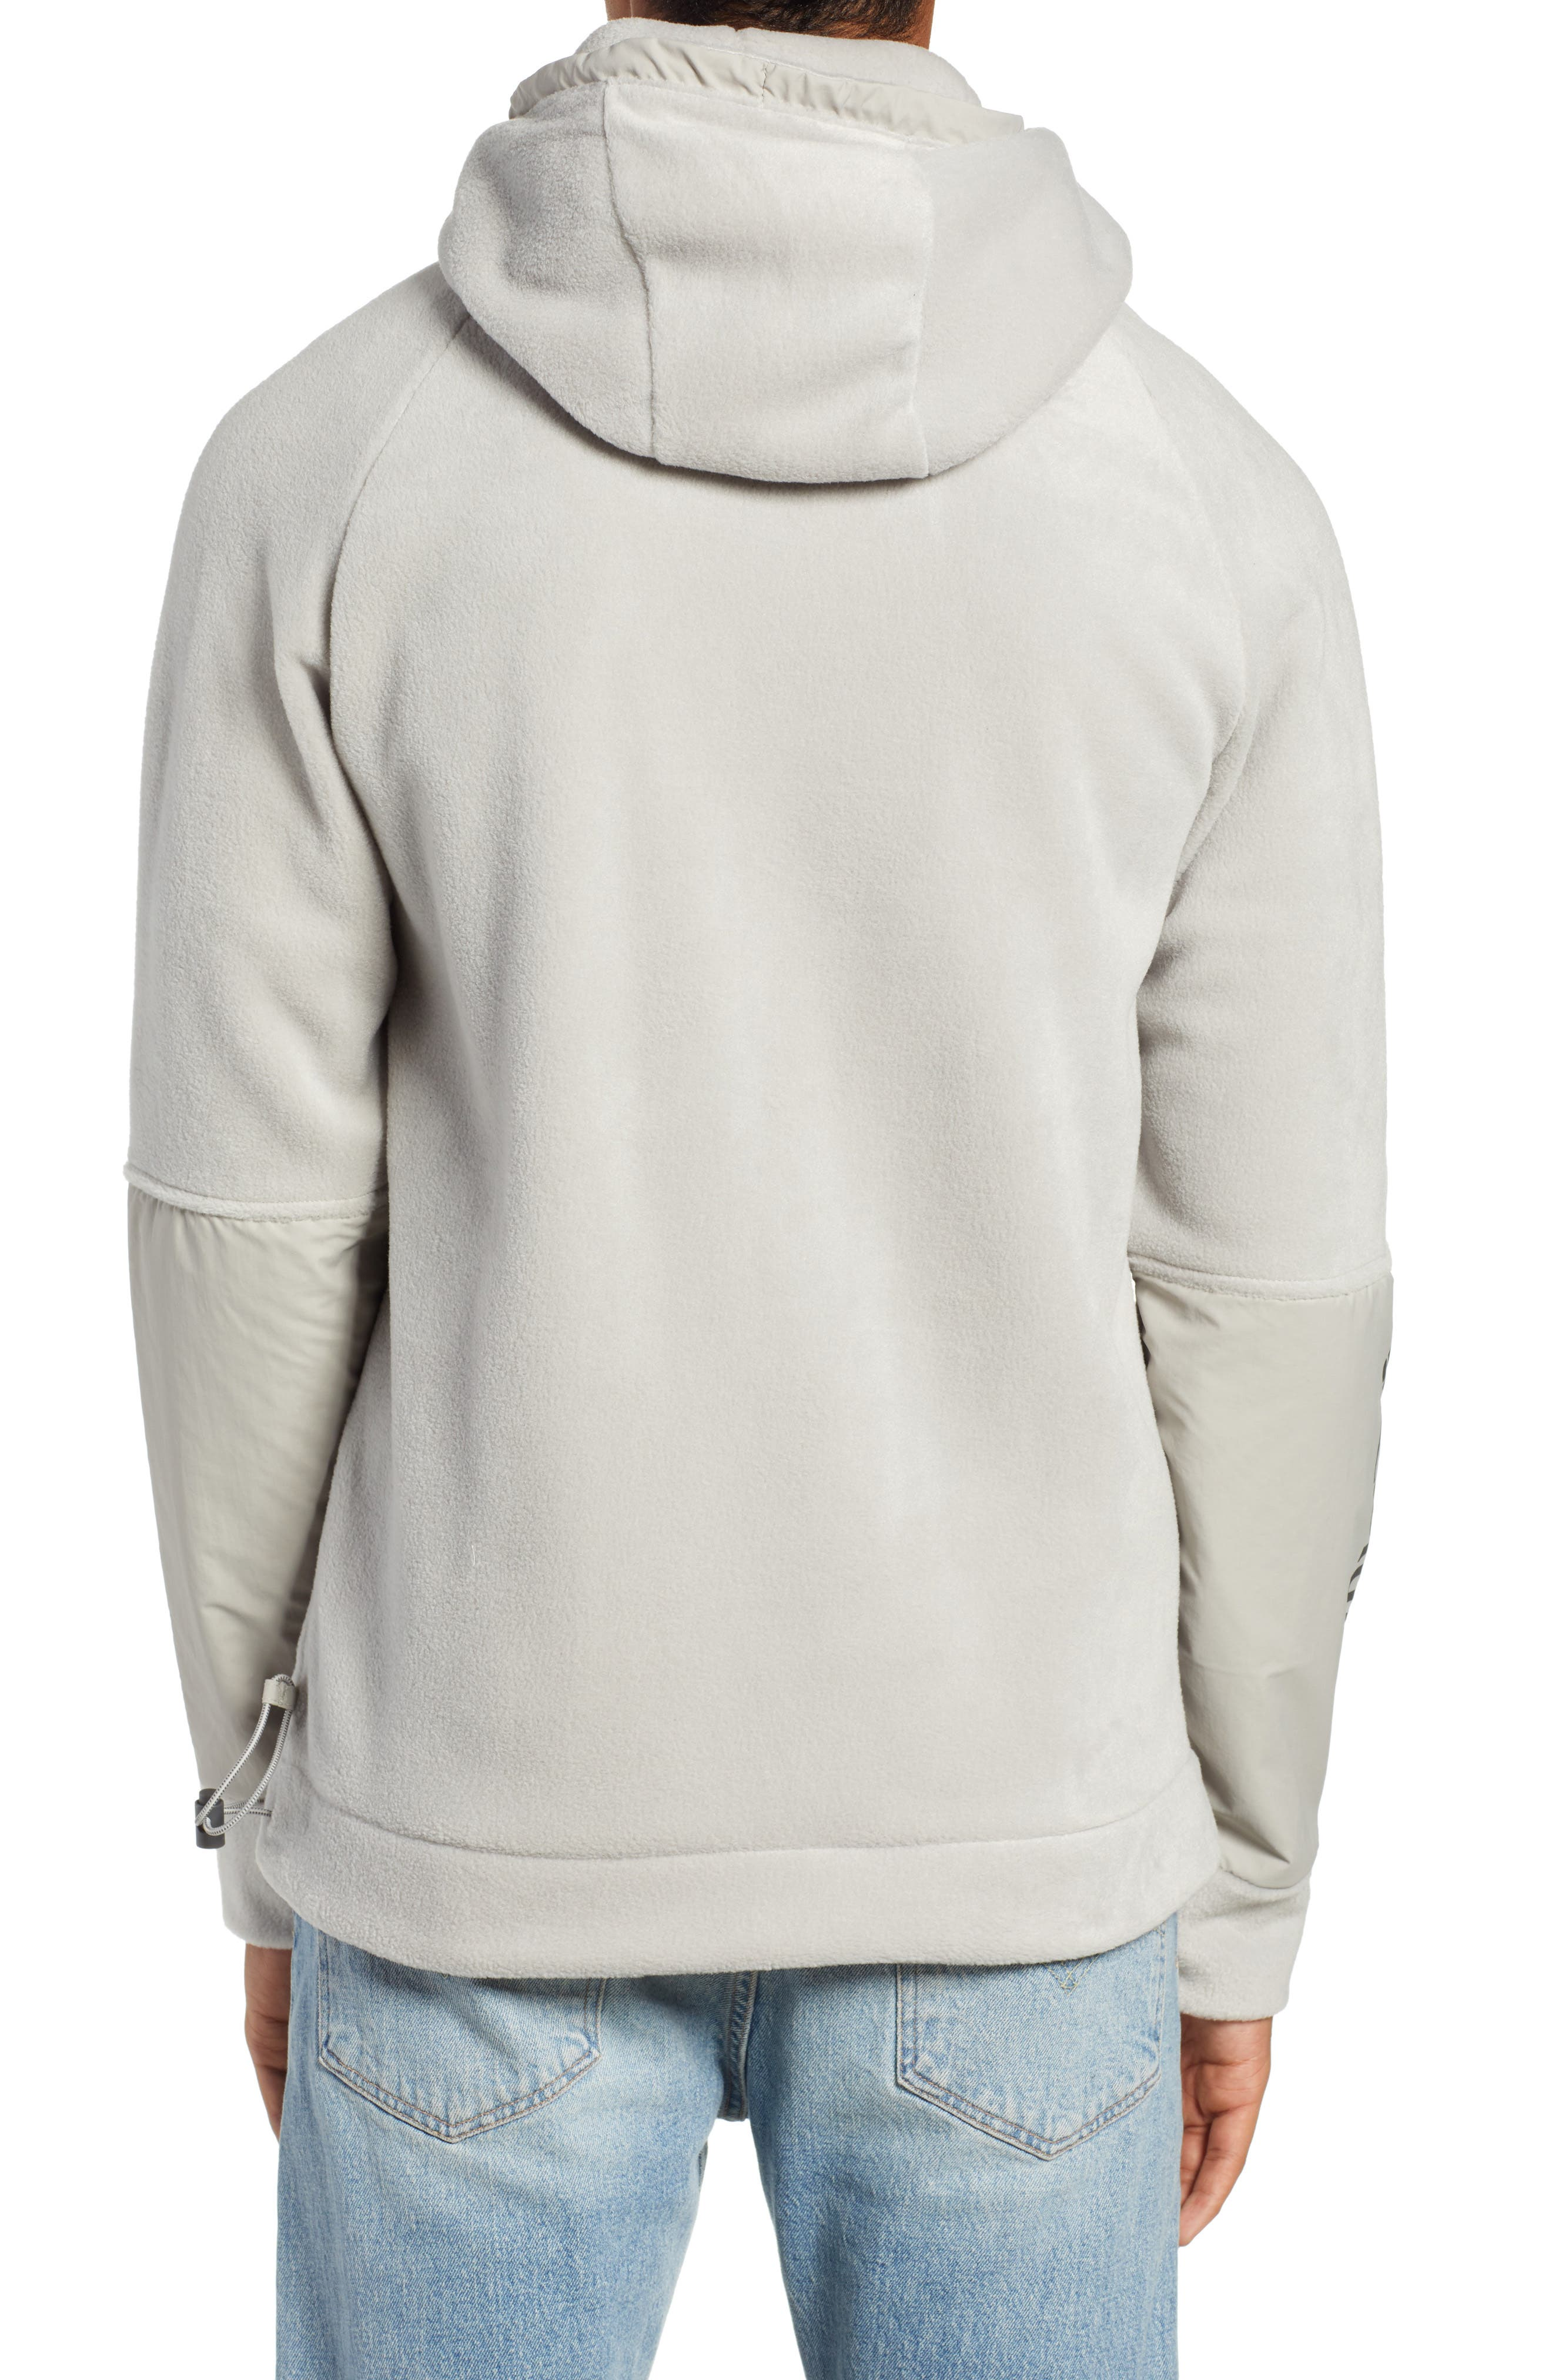 CSC Fleece Hoodie,                             Alternate thumbnail 2, color,                             027